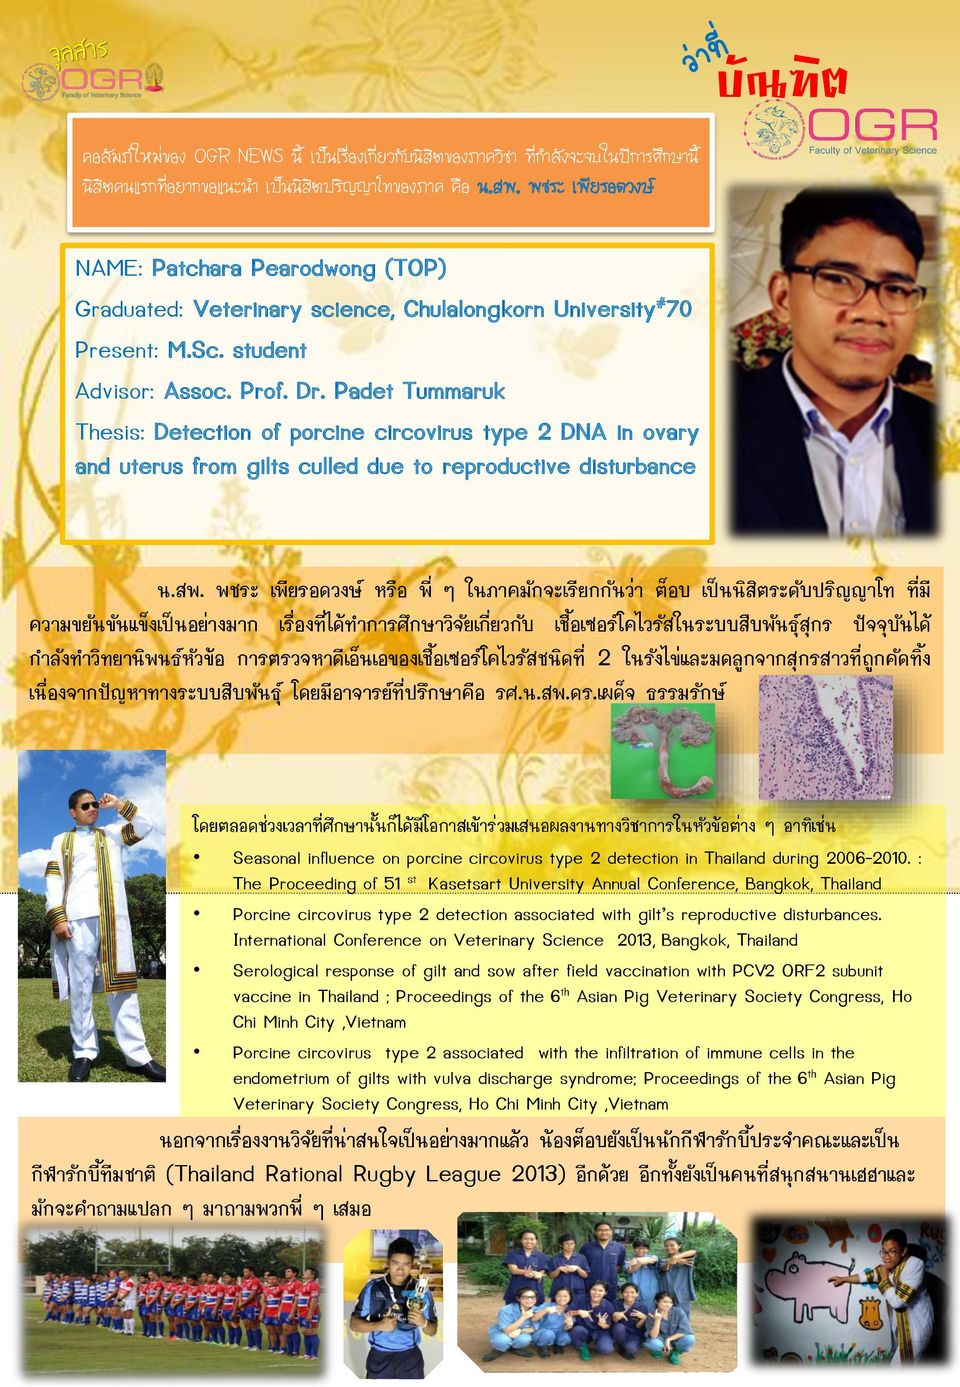 Padet Tummaruk Thesis: Detection of porcine circovirus type 2 DNA in ovary and uterus from gilts culled due to reproductive disturbance น.สพ.